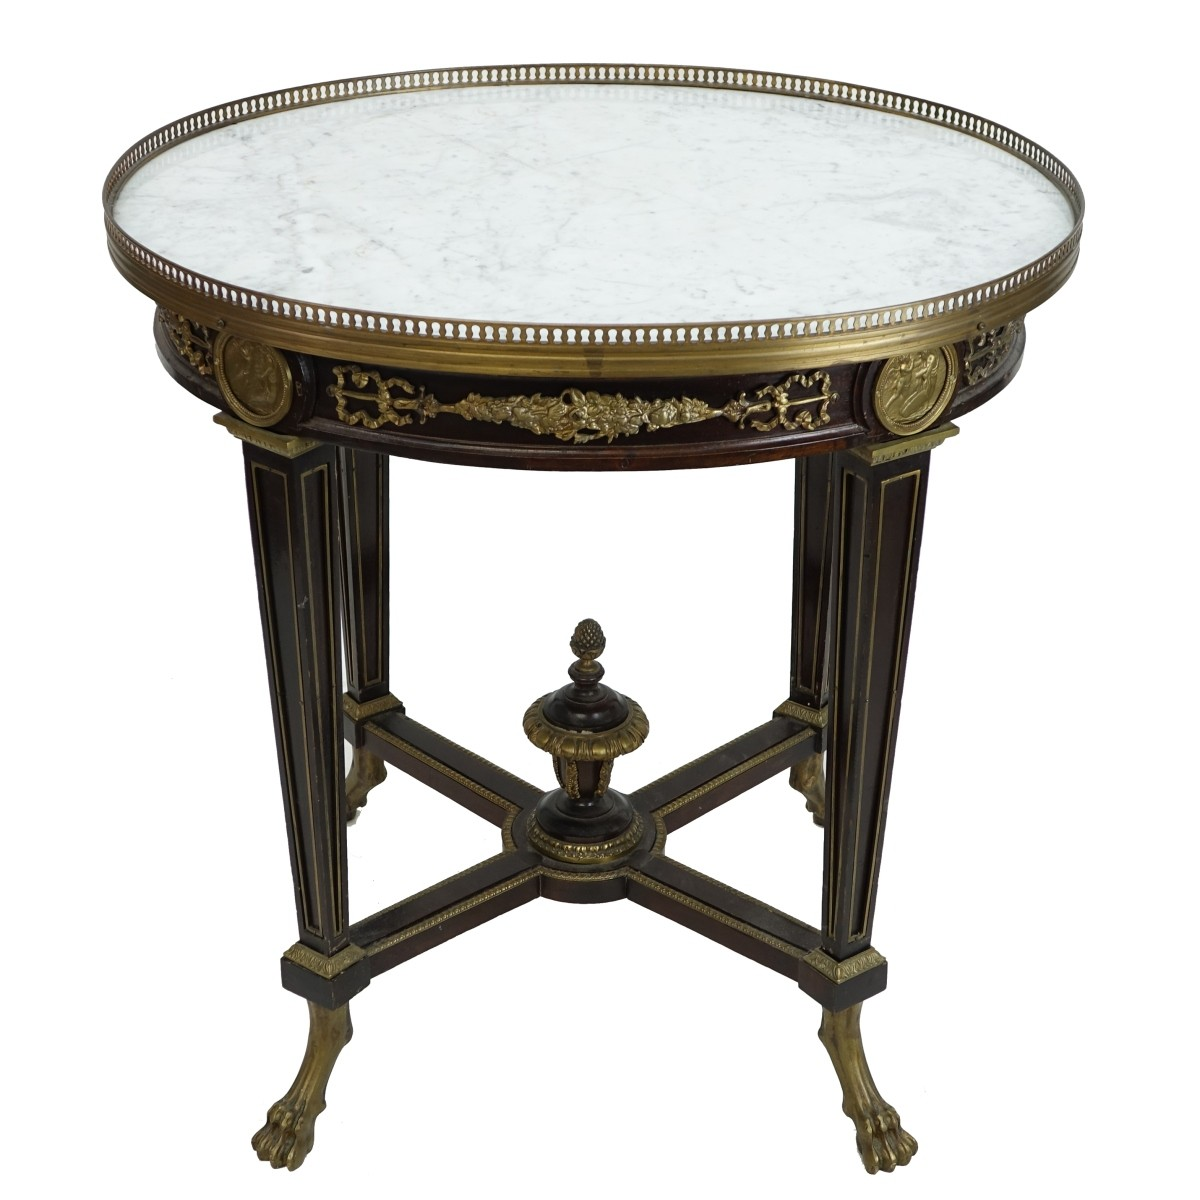 19/20th C. Louis XVI Style Side Table